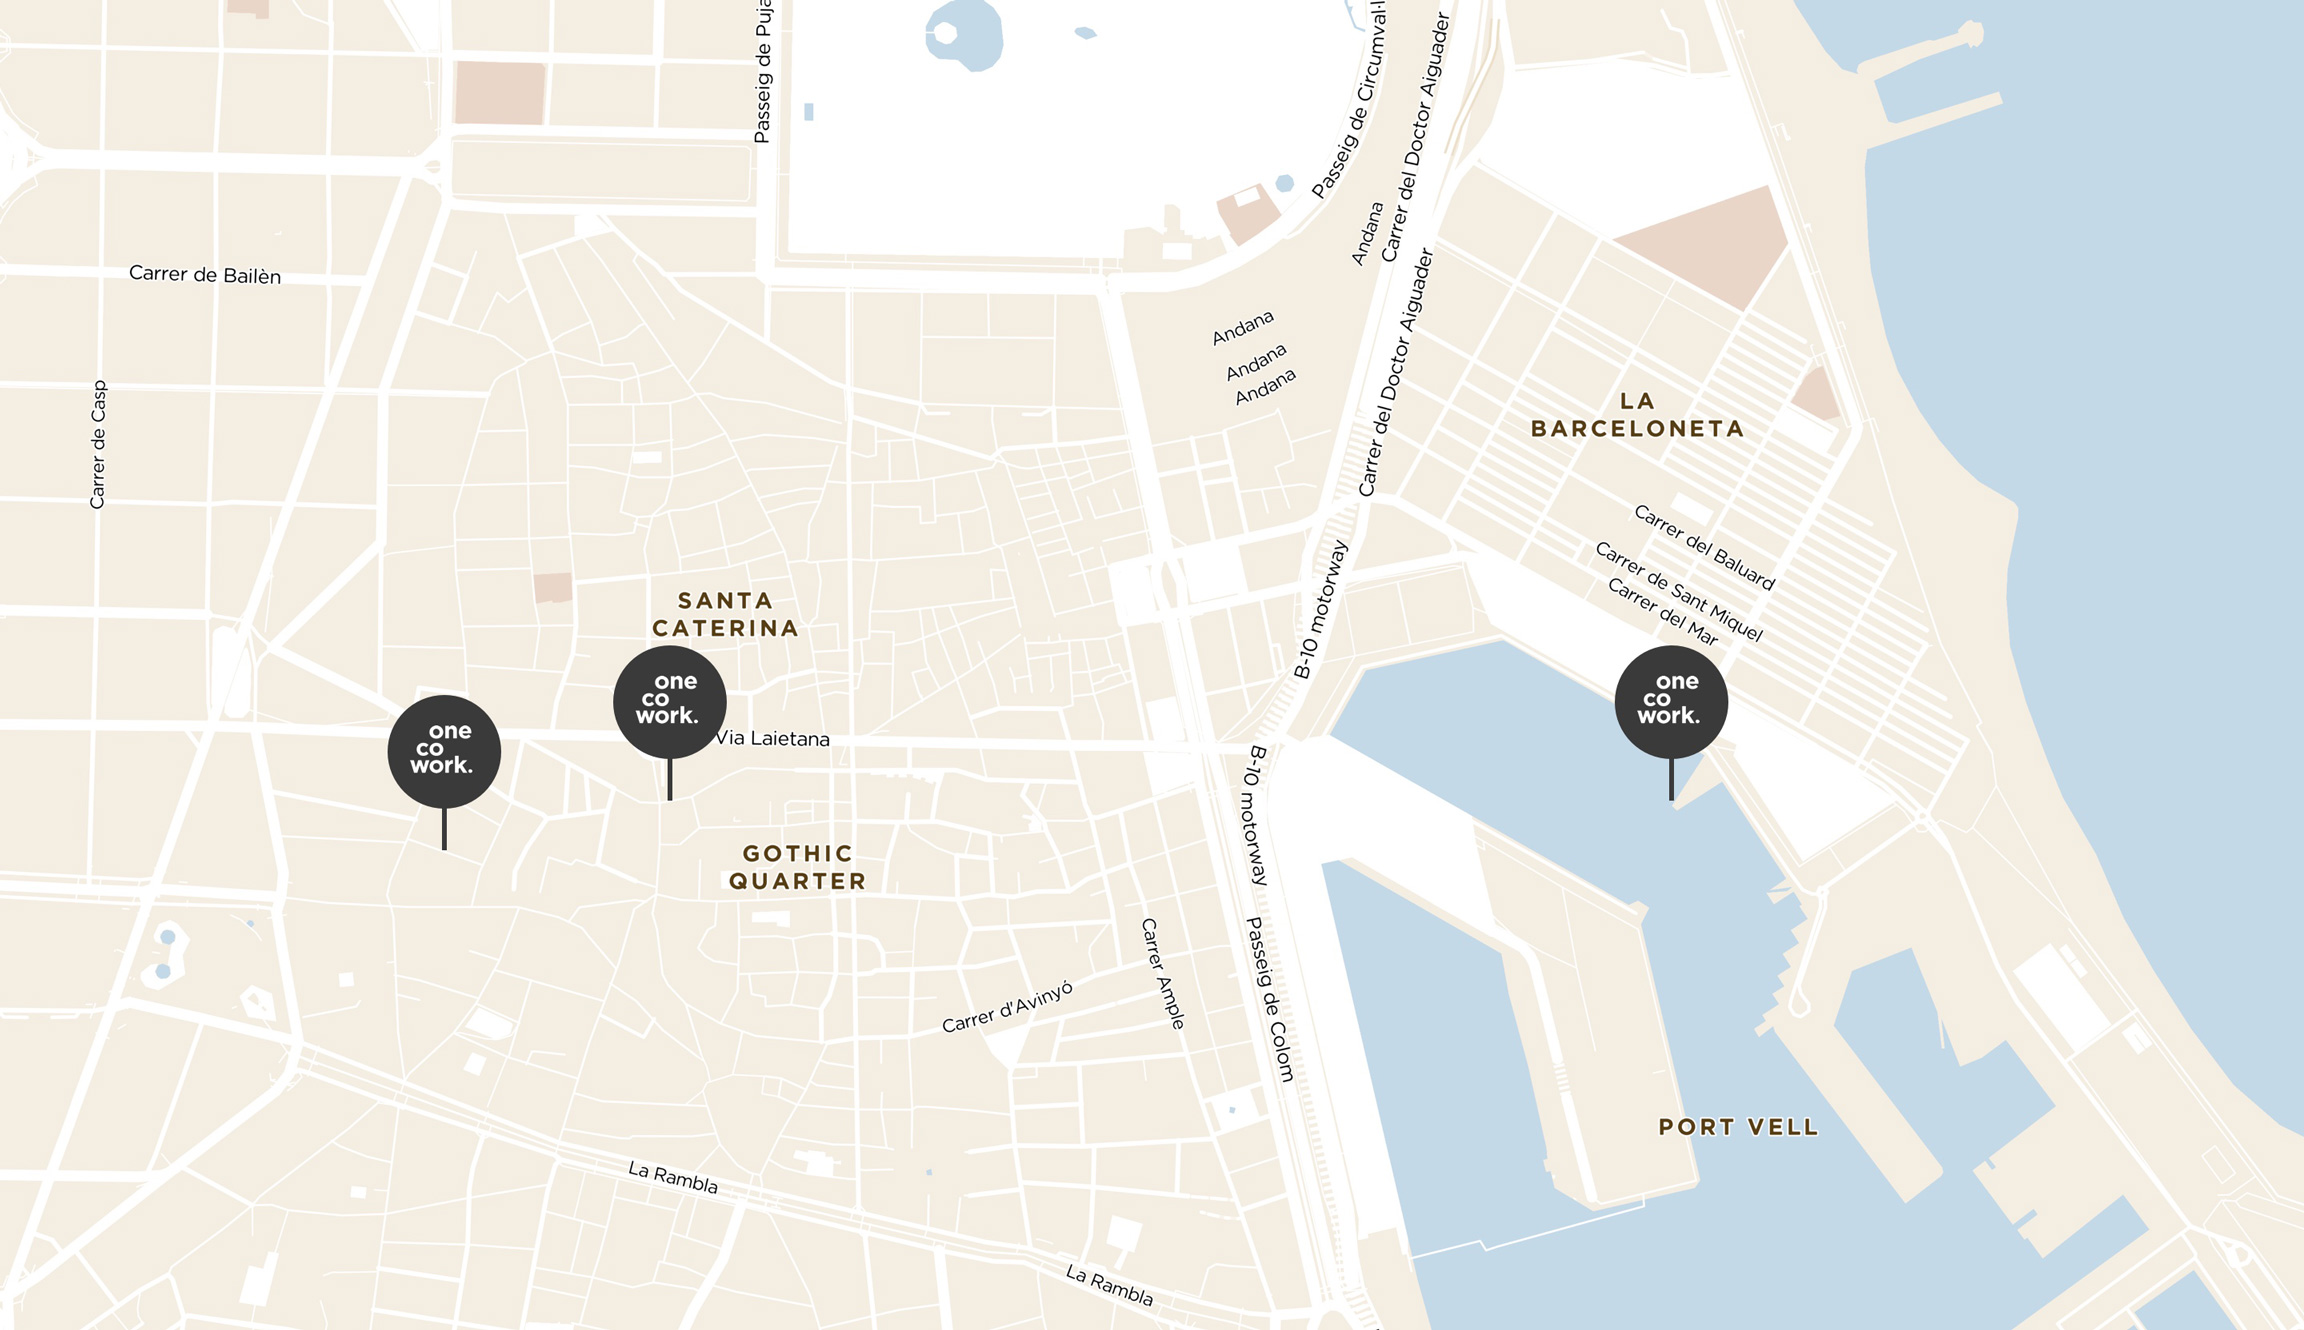 location of the 3 coworking spaces of OneCoWork on a map of Barcelona